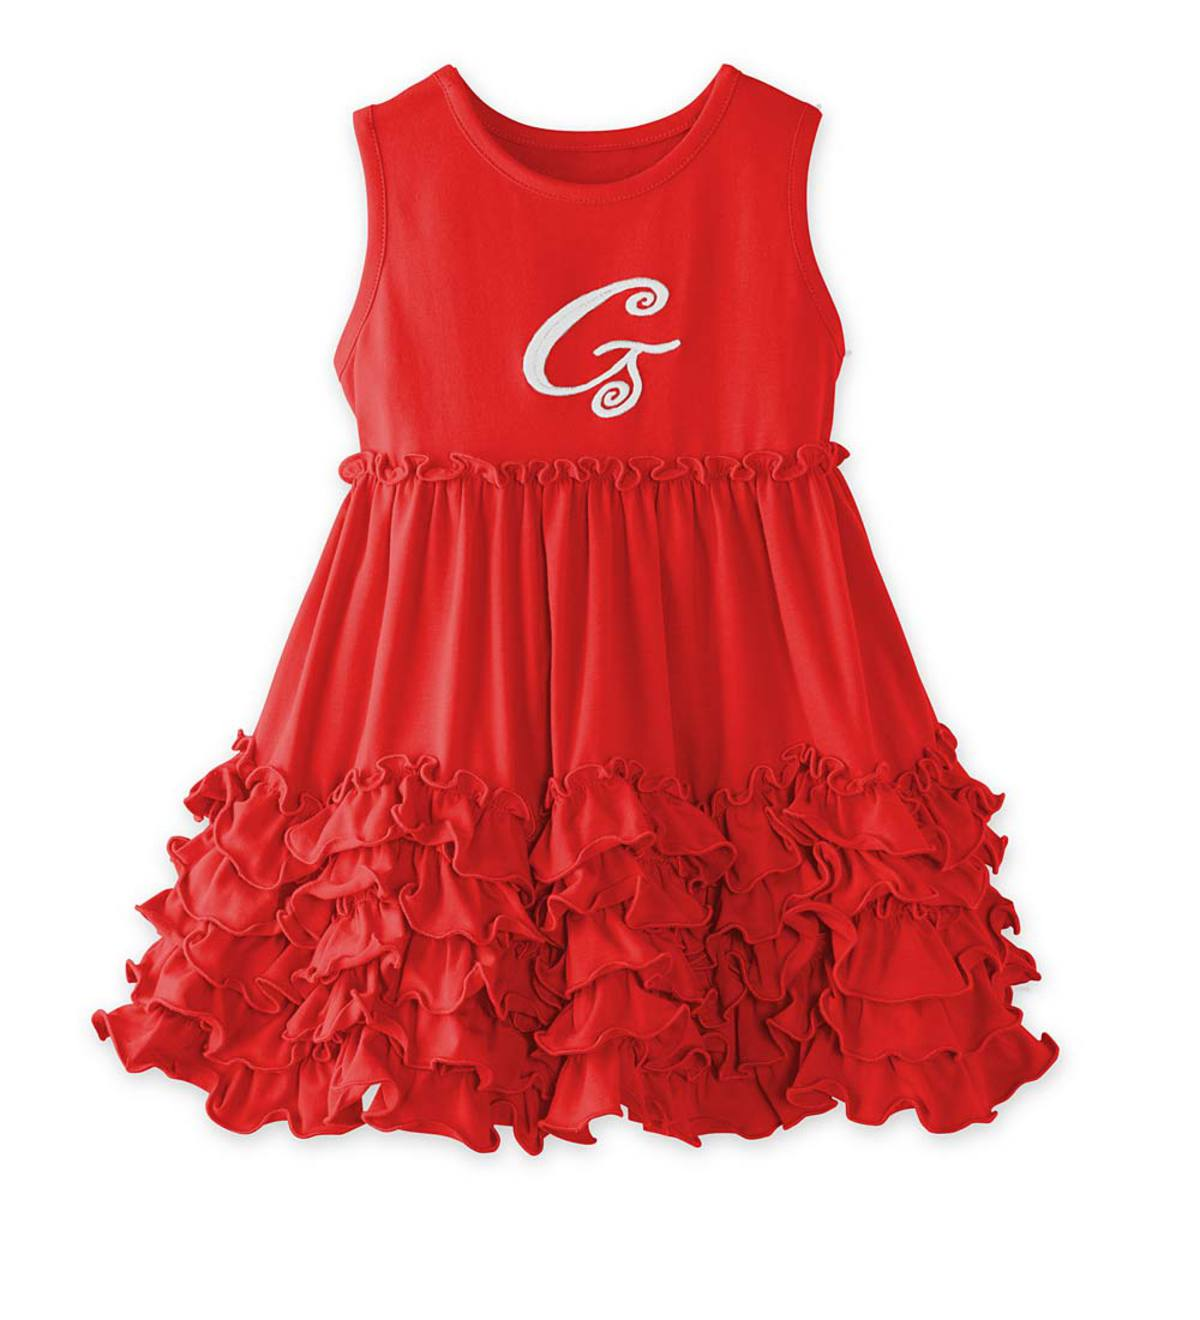 Personalized Sleeveless Ruffle Dress - RD - 18M